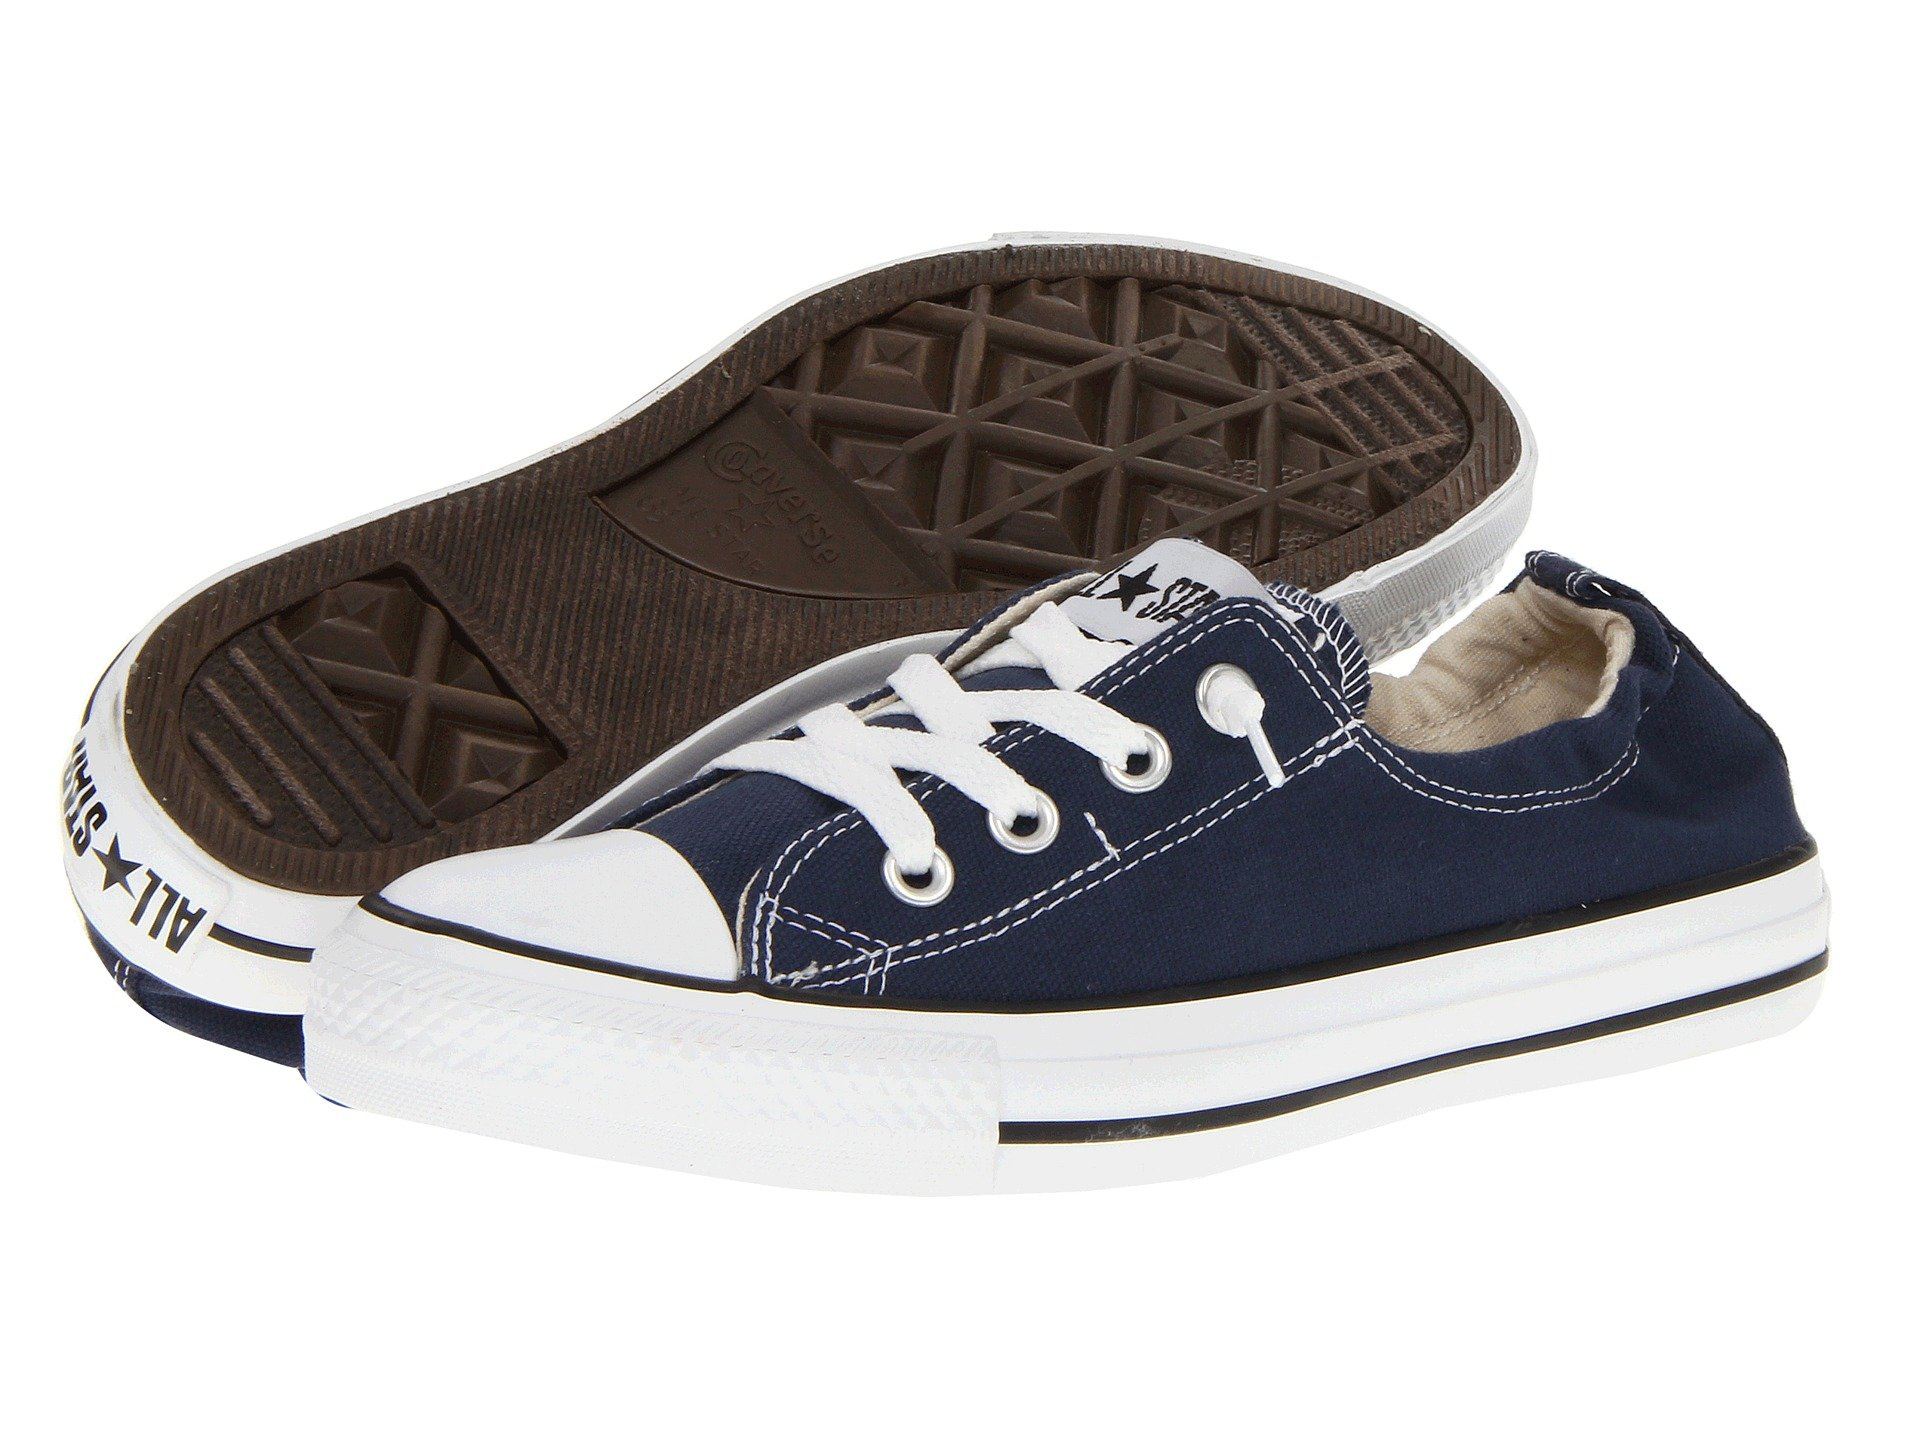 converse one star zappos